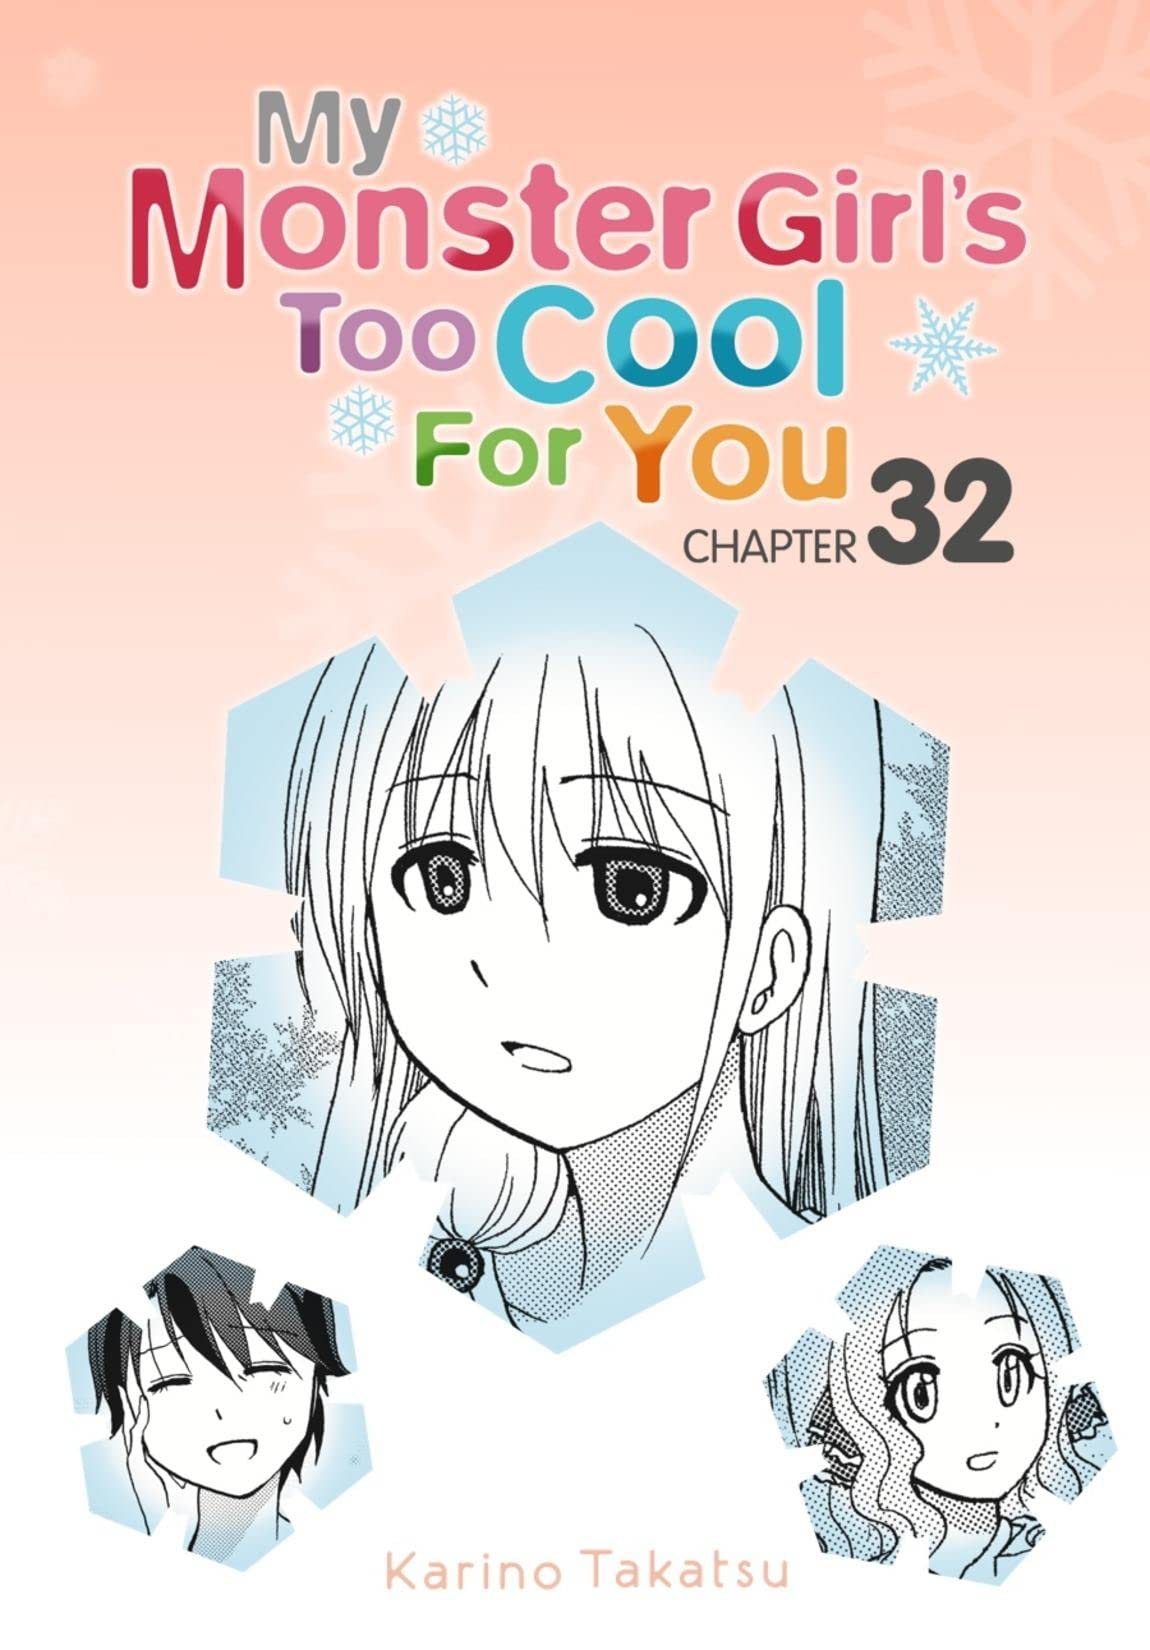 My Monster Girl's Too Cool for You #32